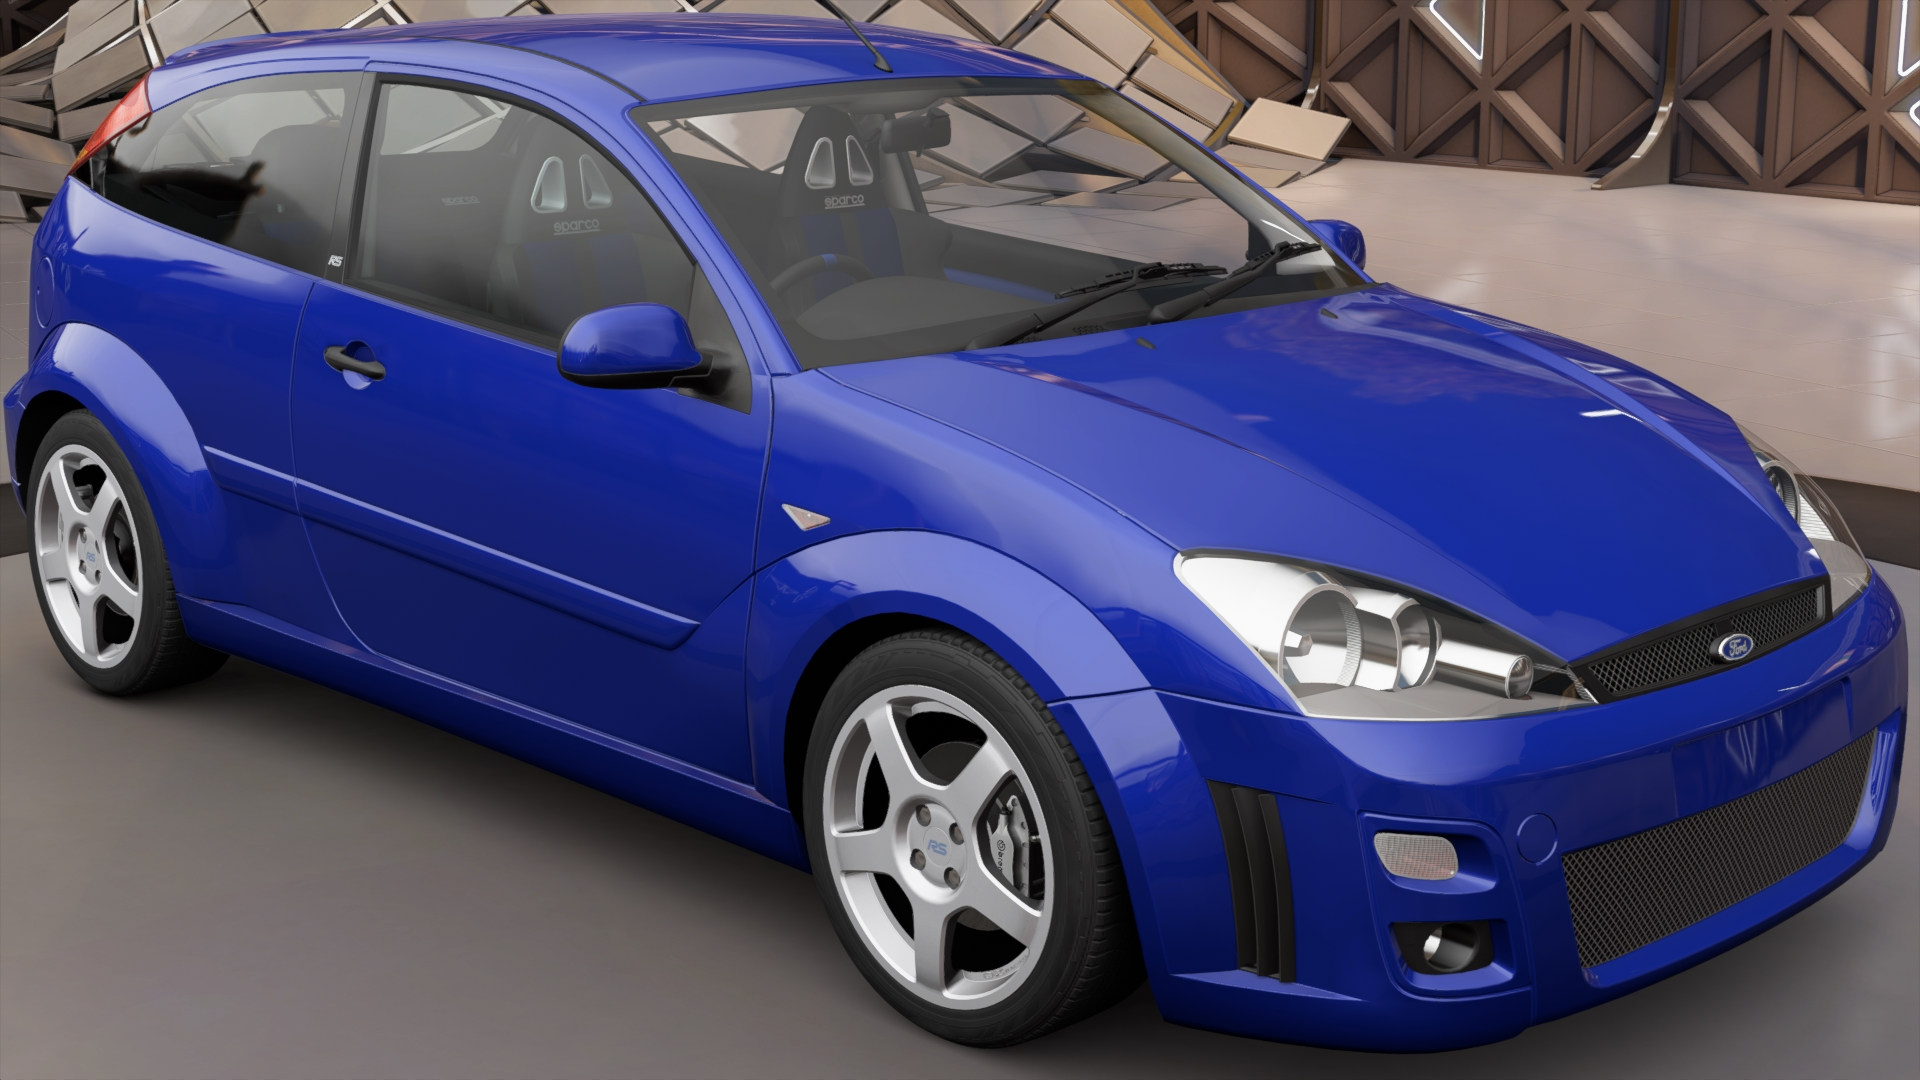 ford focus rs 2003 forza motorsport wiki fandom powered by wikia. Black Bedroom Furniture Sets. Home Design Ideas